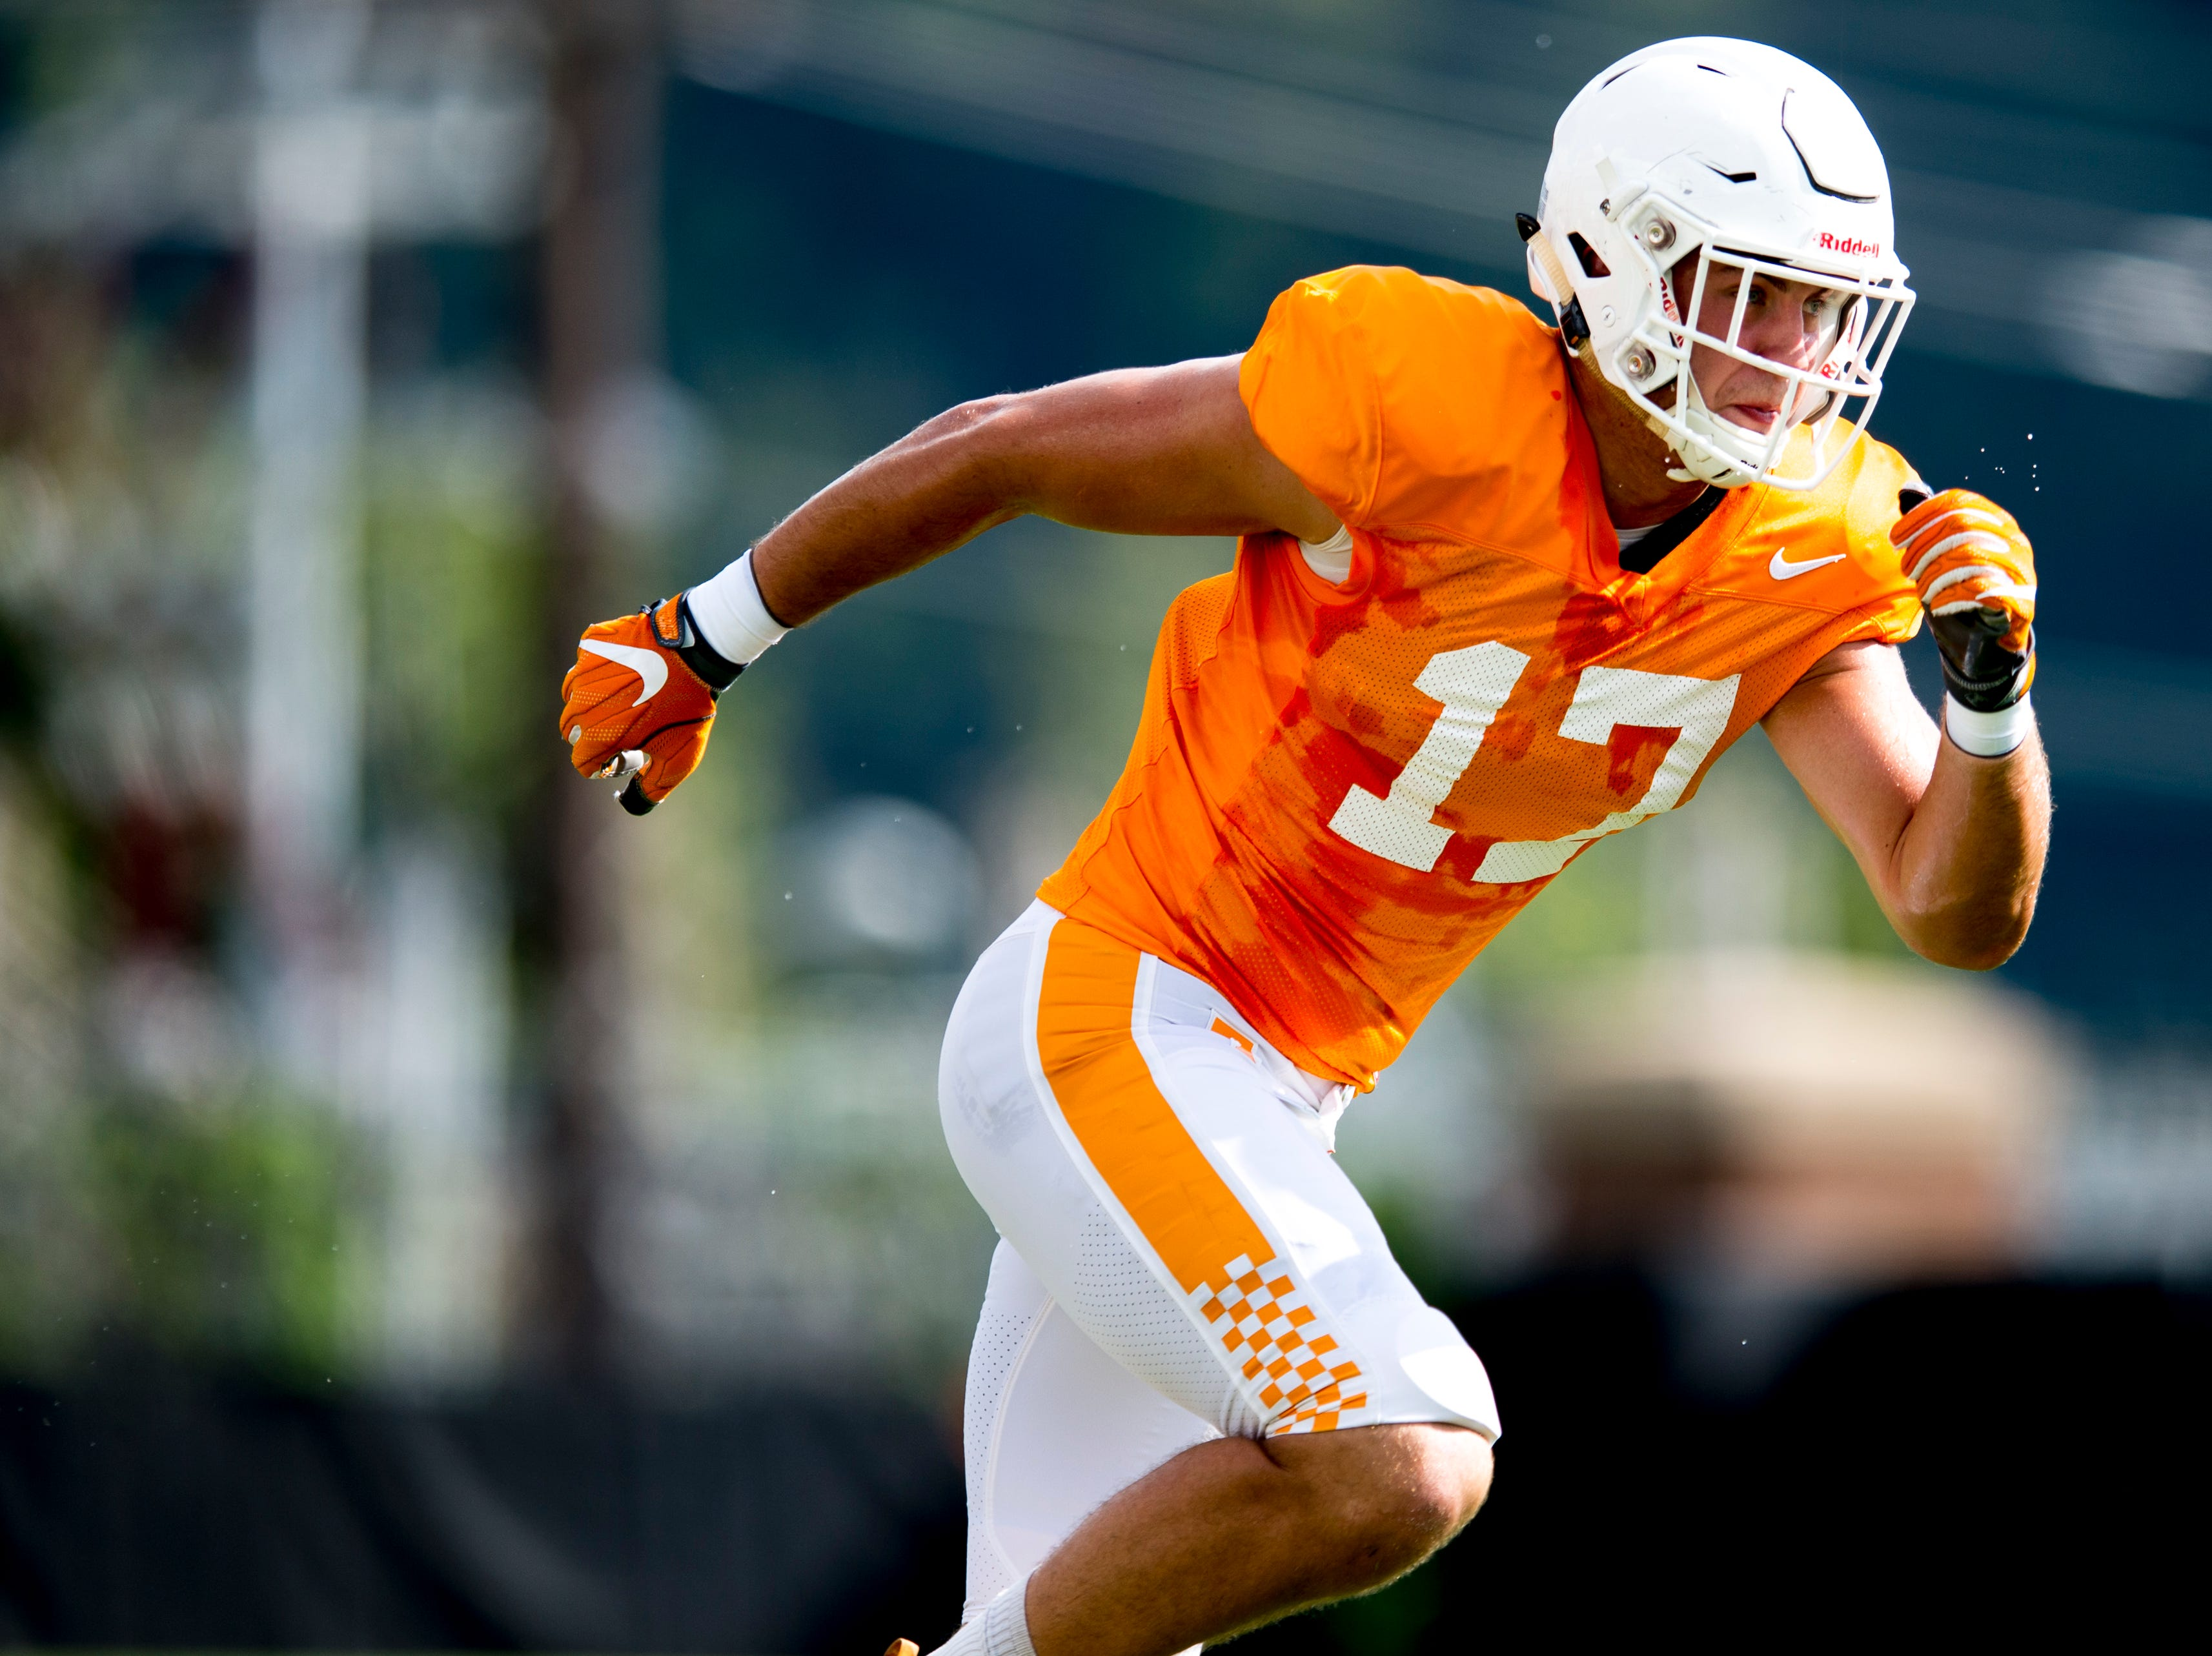 Tennessee linebacker Dillon Bates (17) runs down the field during Tennessee fall football practice at Haslam Field in Knoxville, Tennessee on Wednesday, September 12, 2018.